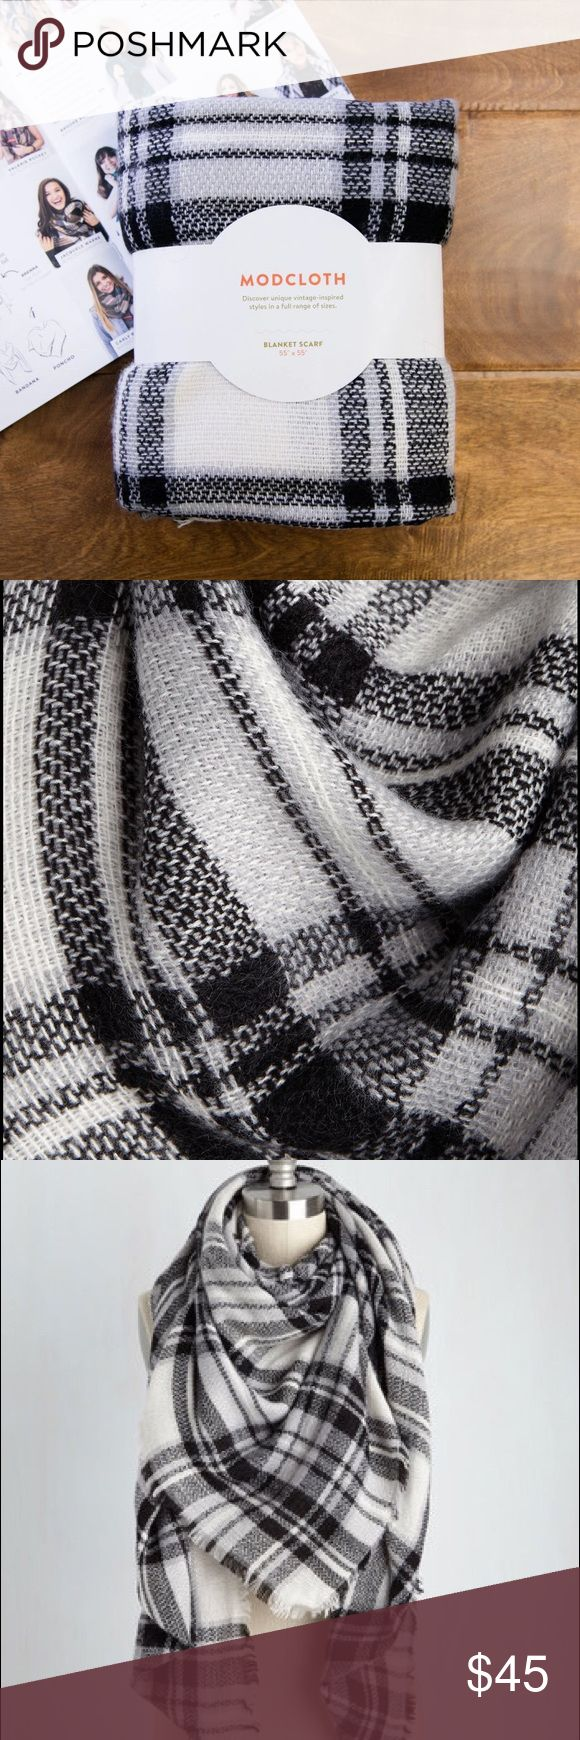 Modcloth Blanket Scarf New. 55 x 55 ModCloth Accessories Scarves & Wraps